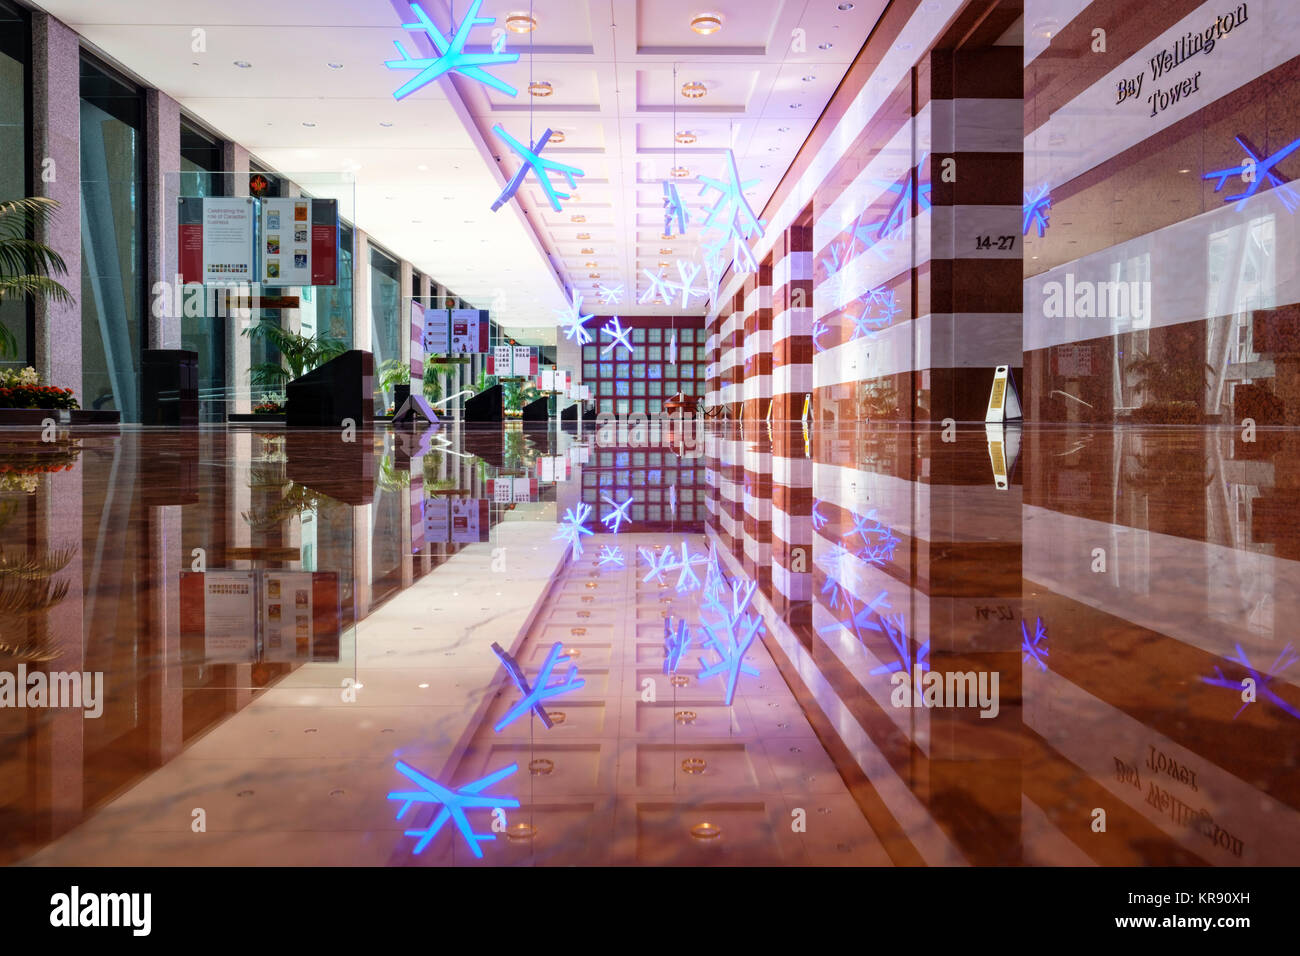 Bay Wellington Tower, TD Canada Trust lobby, Brookfield Place (formerly BCE Place), Allen Lambert Galleria, downtown - Stock Image